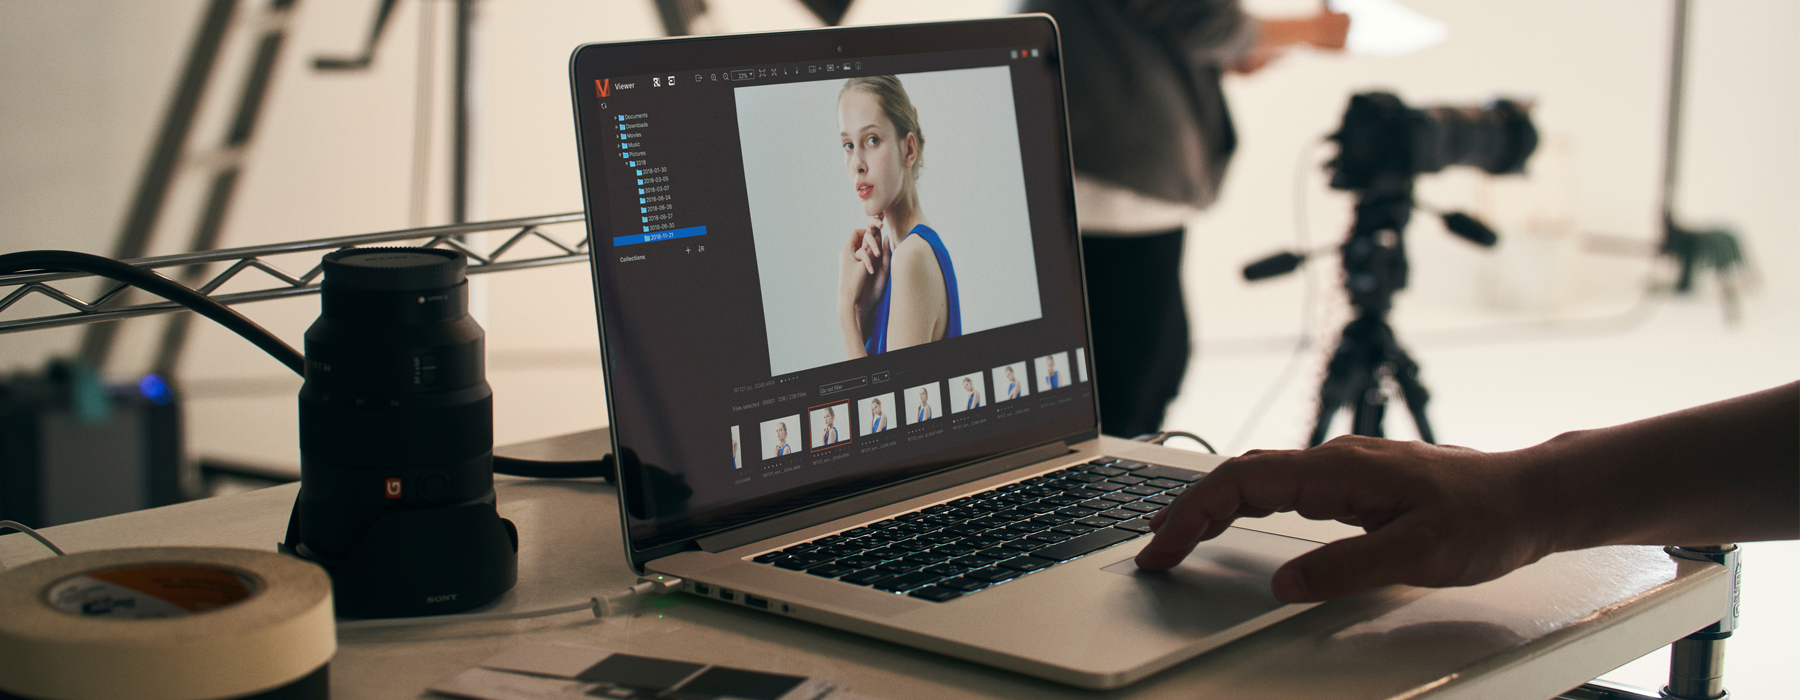 Introduction of Imaging Edge WebCam